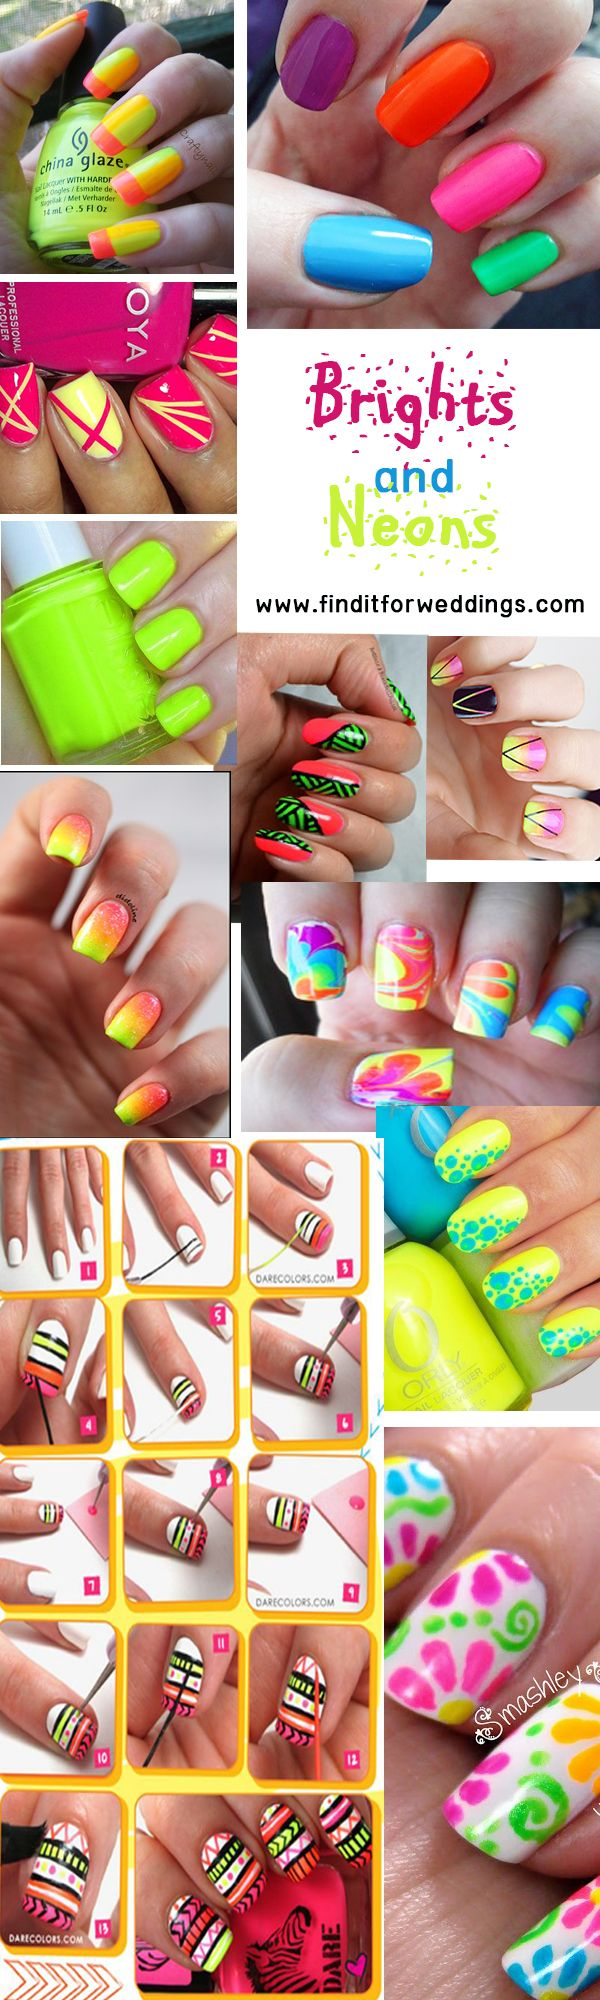 Bright #nails neon nail art nail designs nail art ideas www.finditforweddings.com